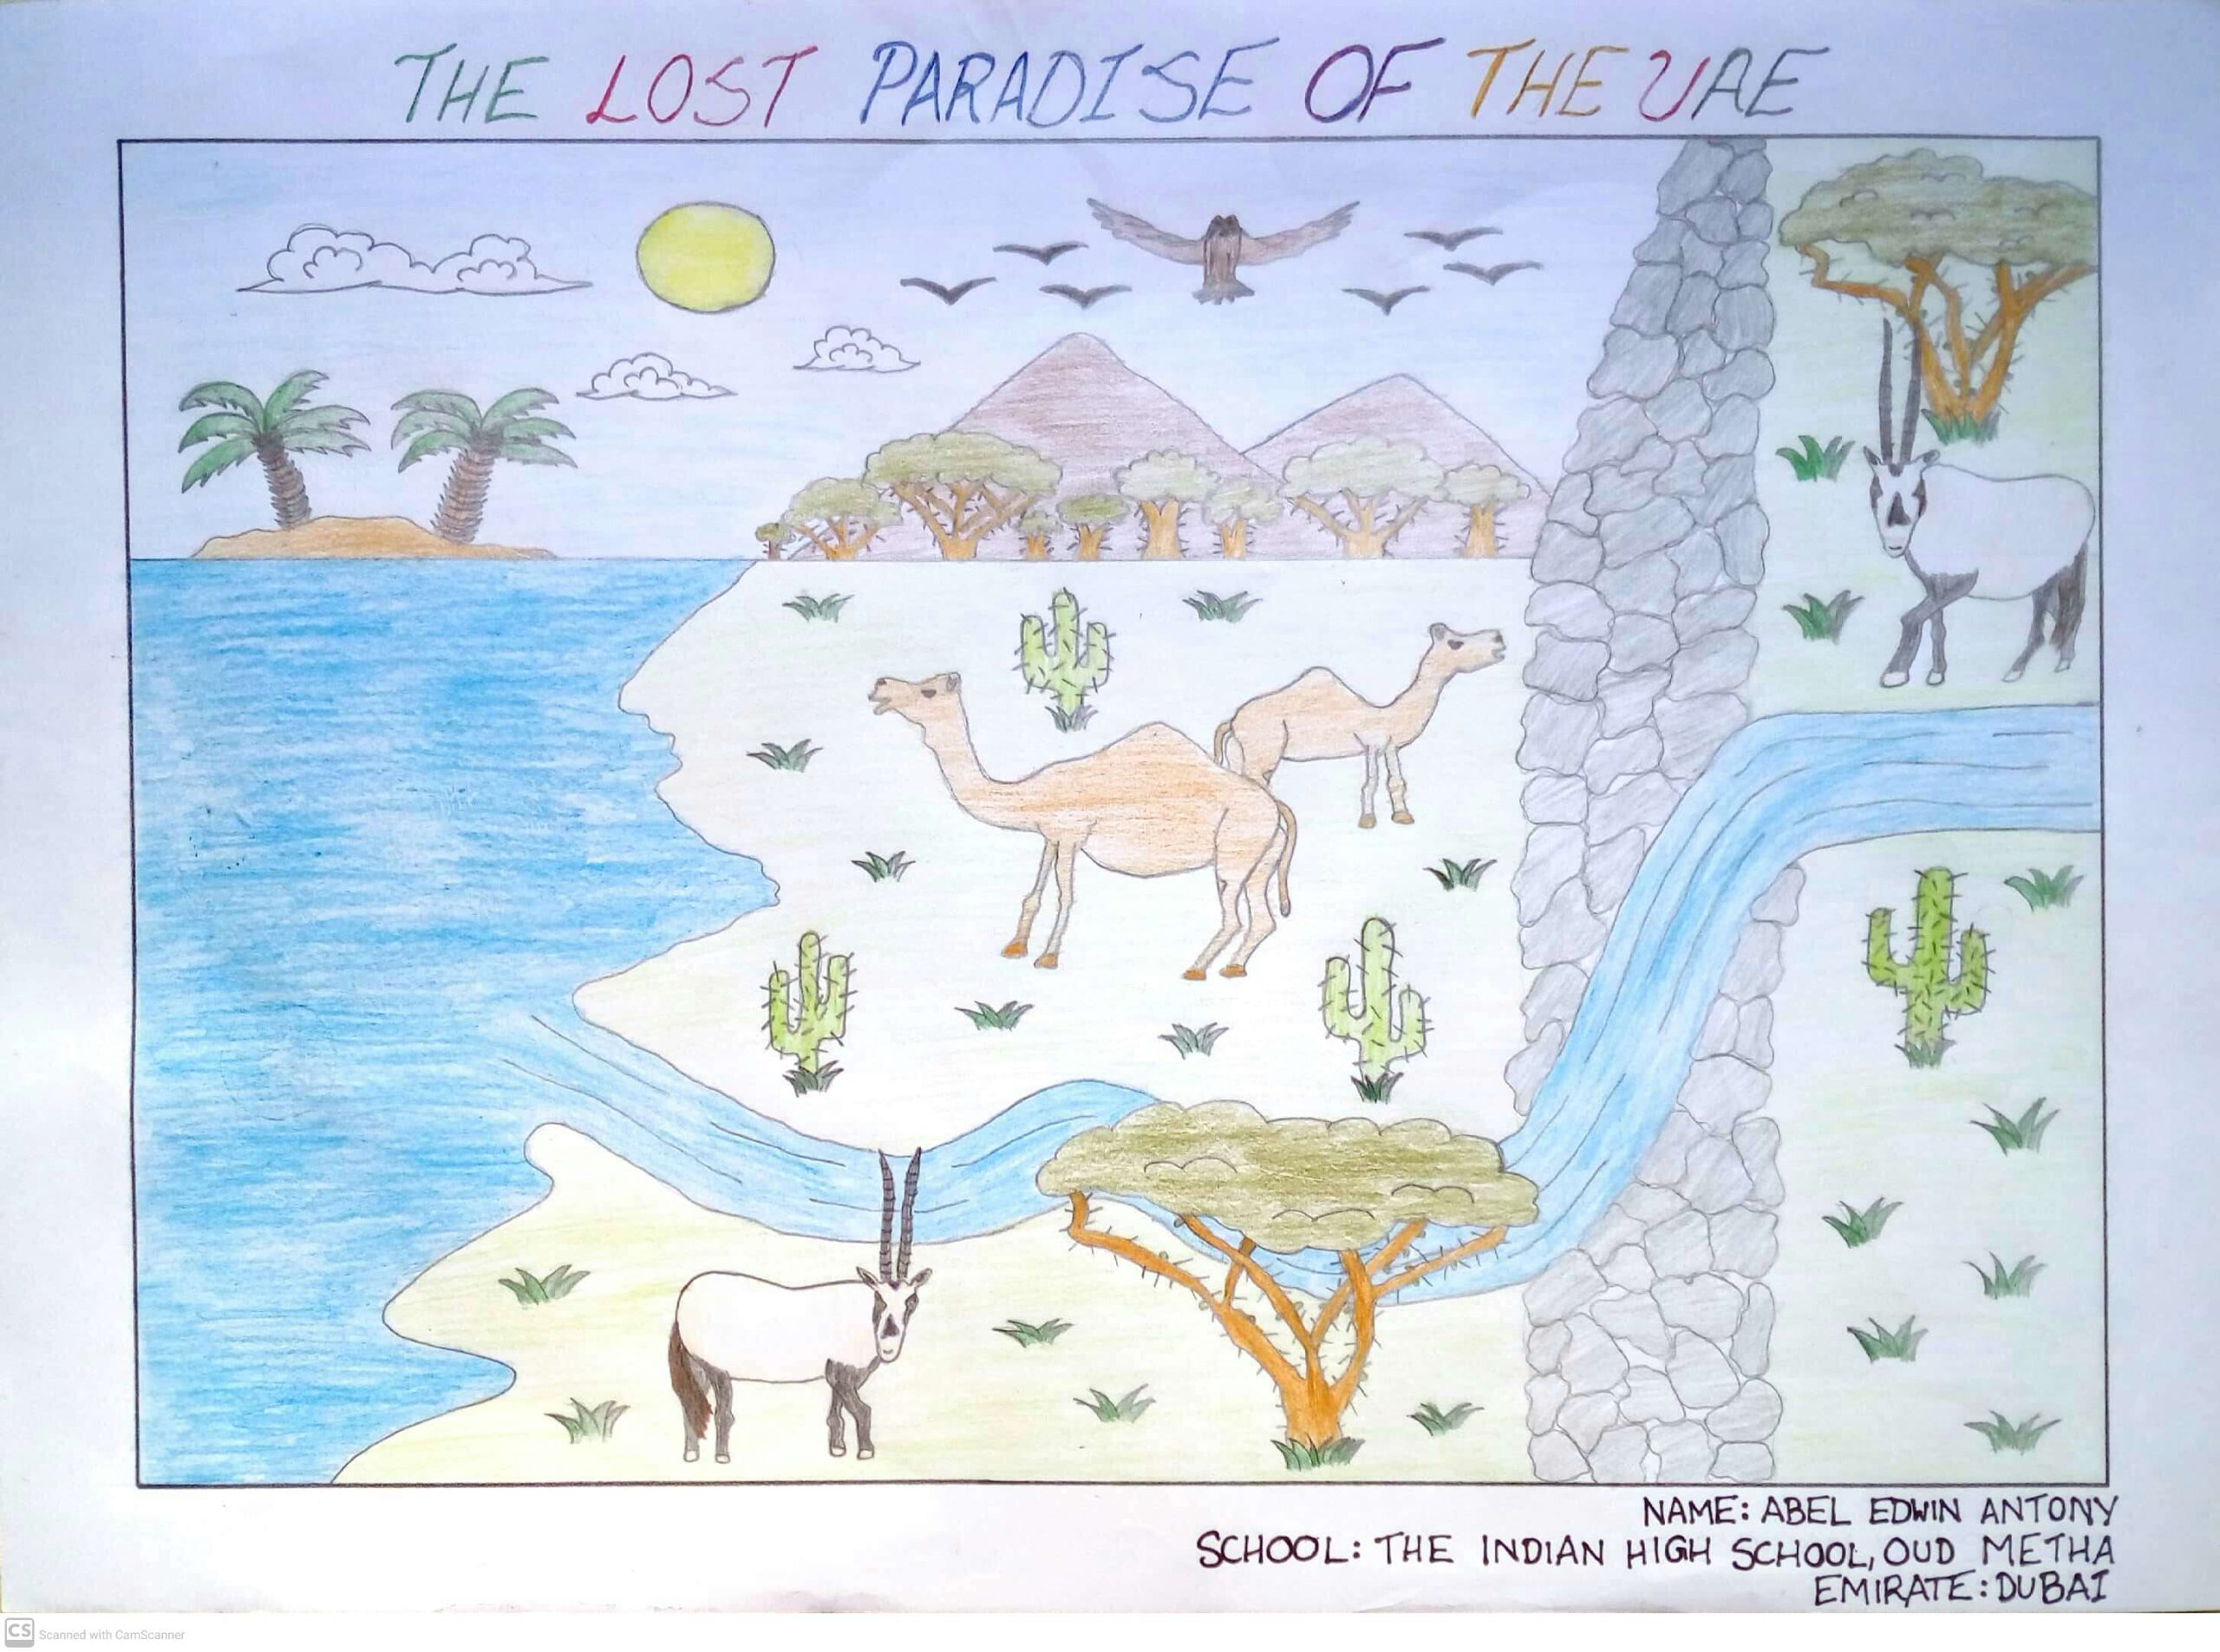 The Lost Paradise of the UAE by Abel Edwin Antony